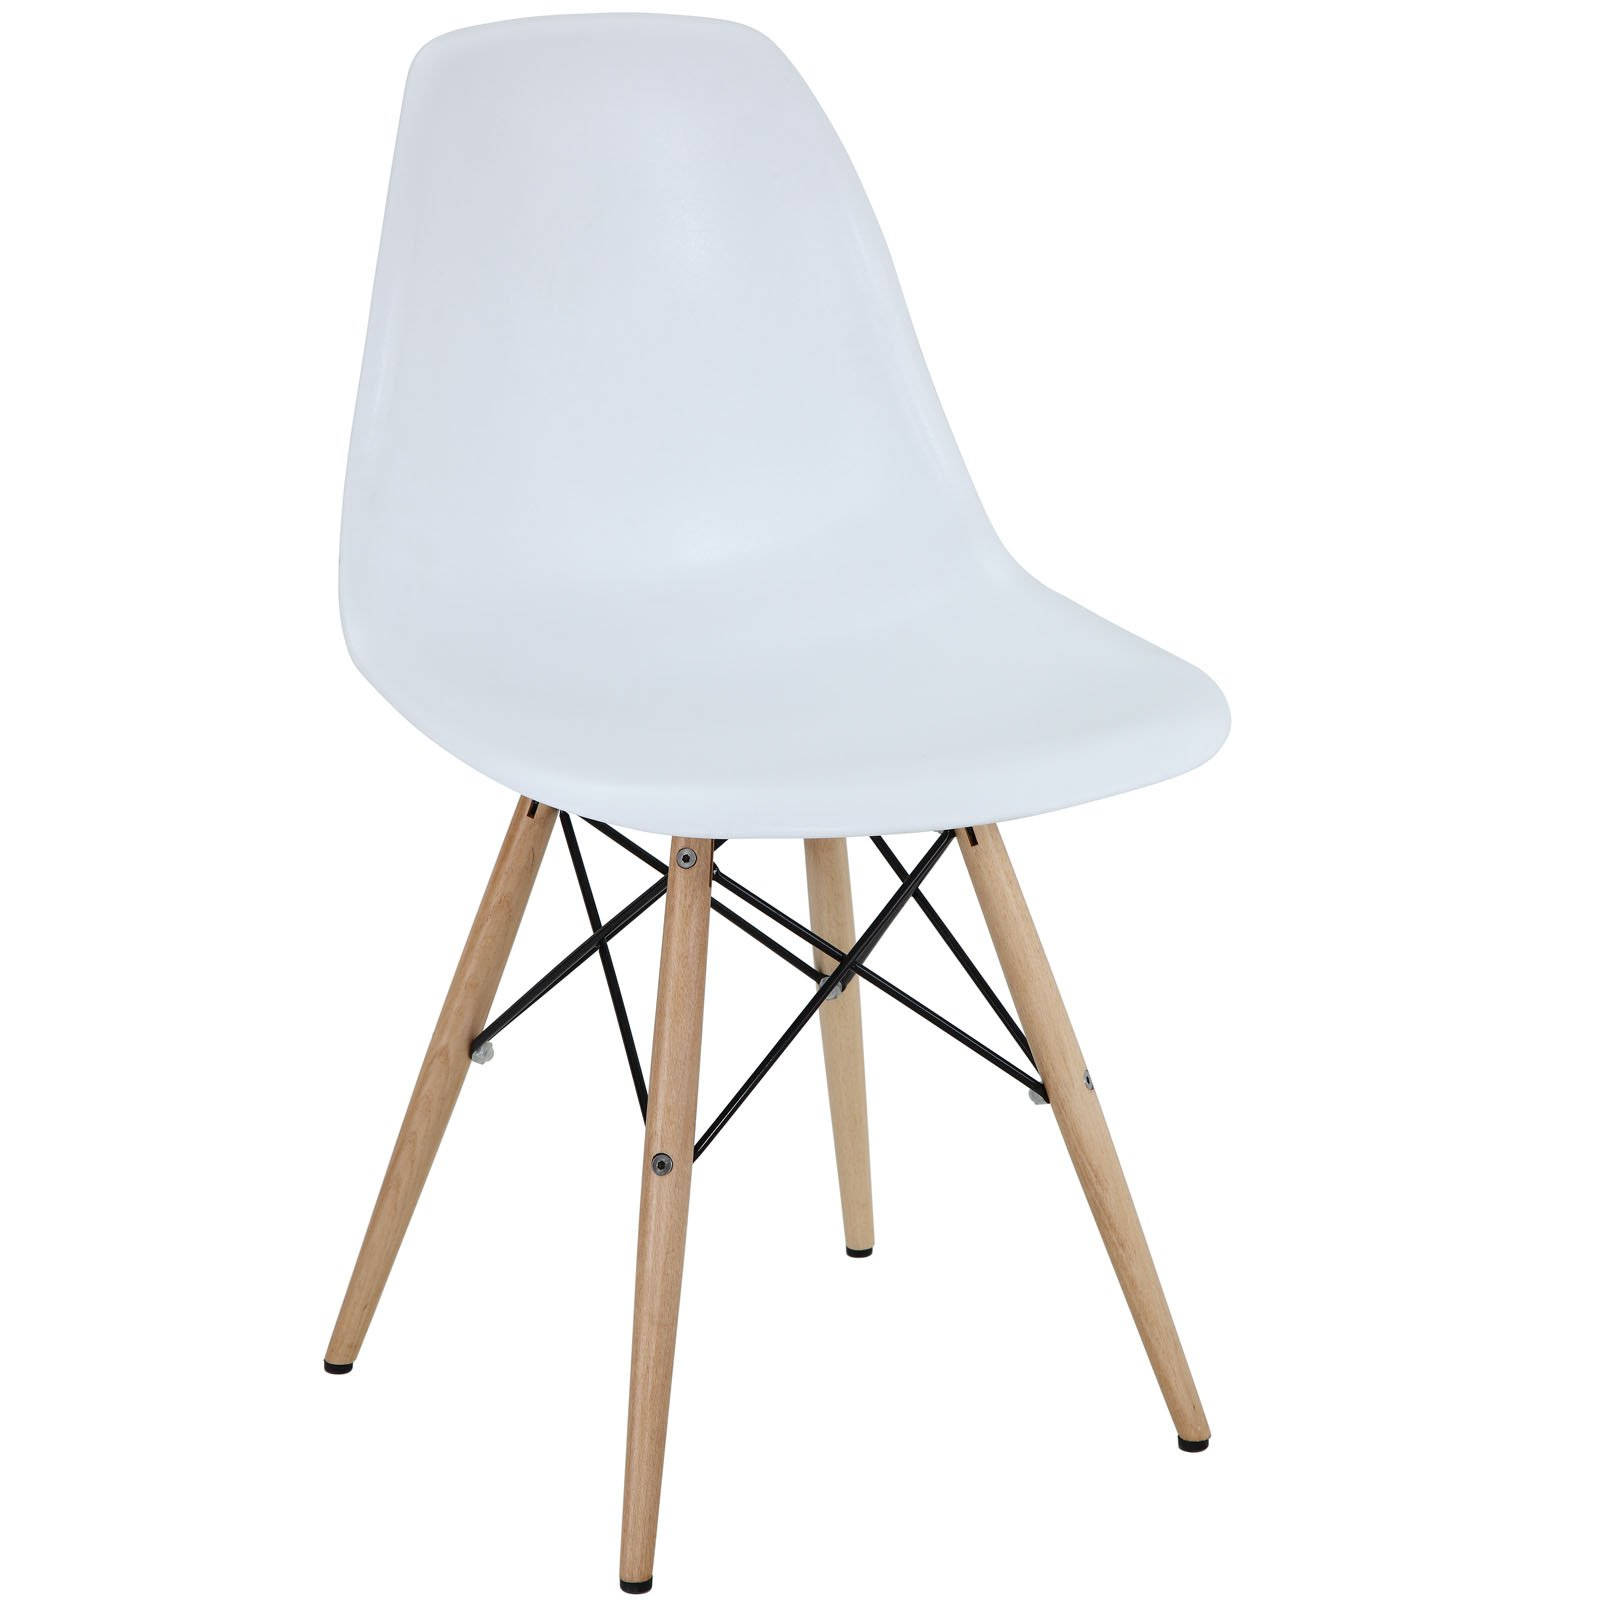 Modway Pyramid Side Chair with Natural Wood Legs in White by Modway (Image #1)